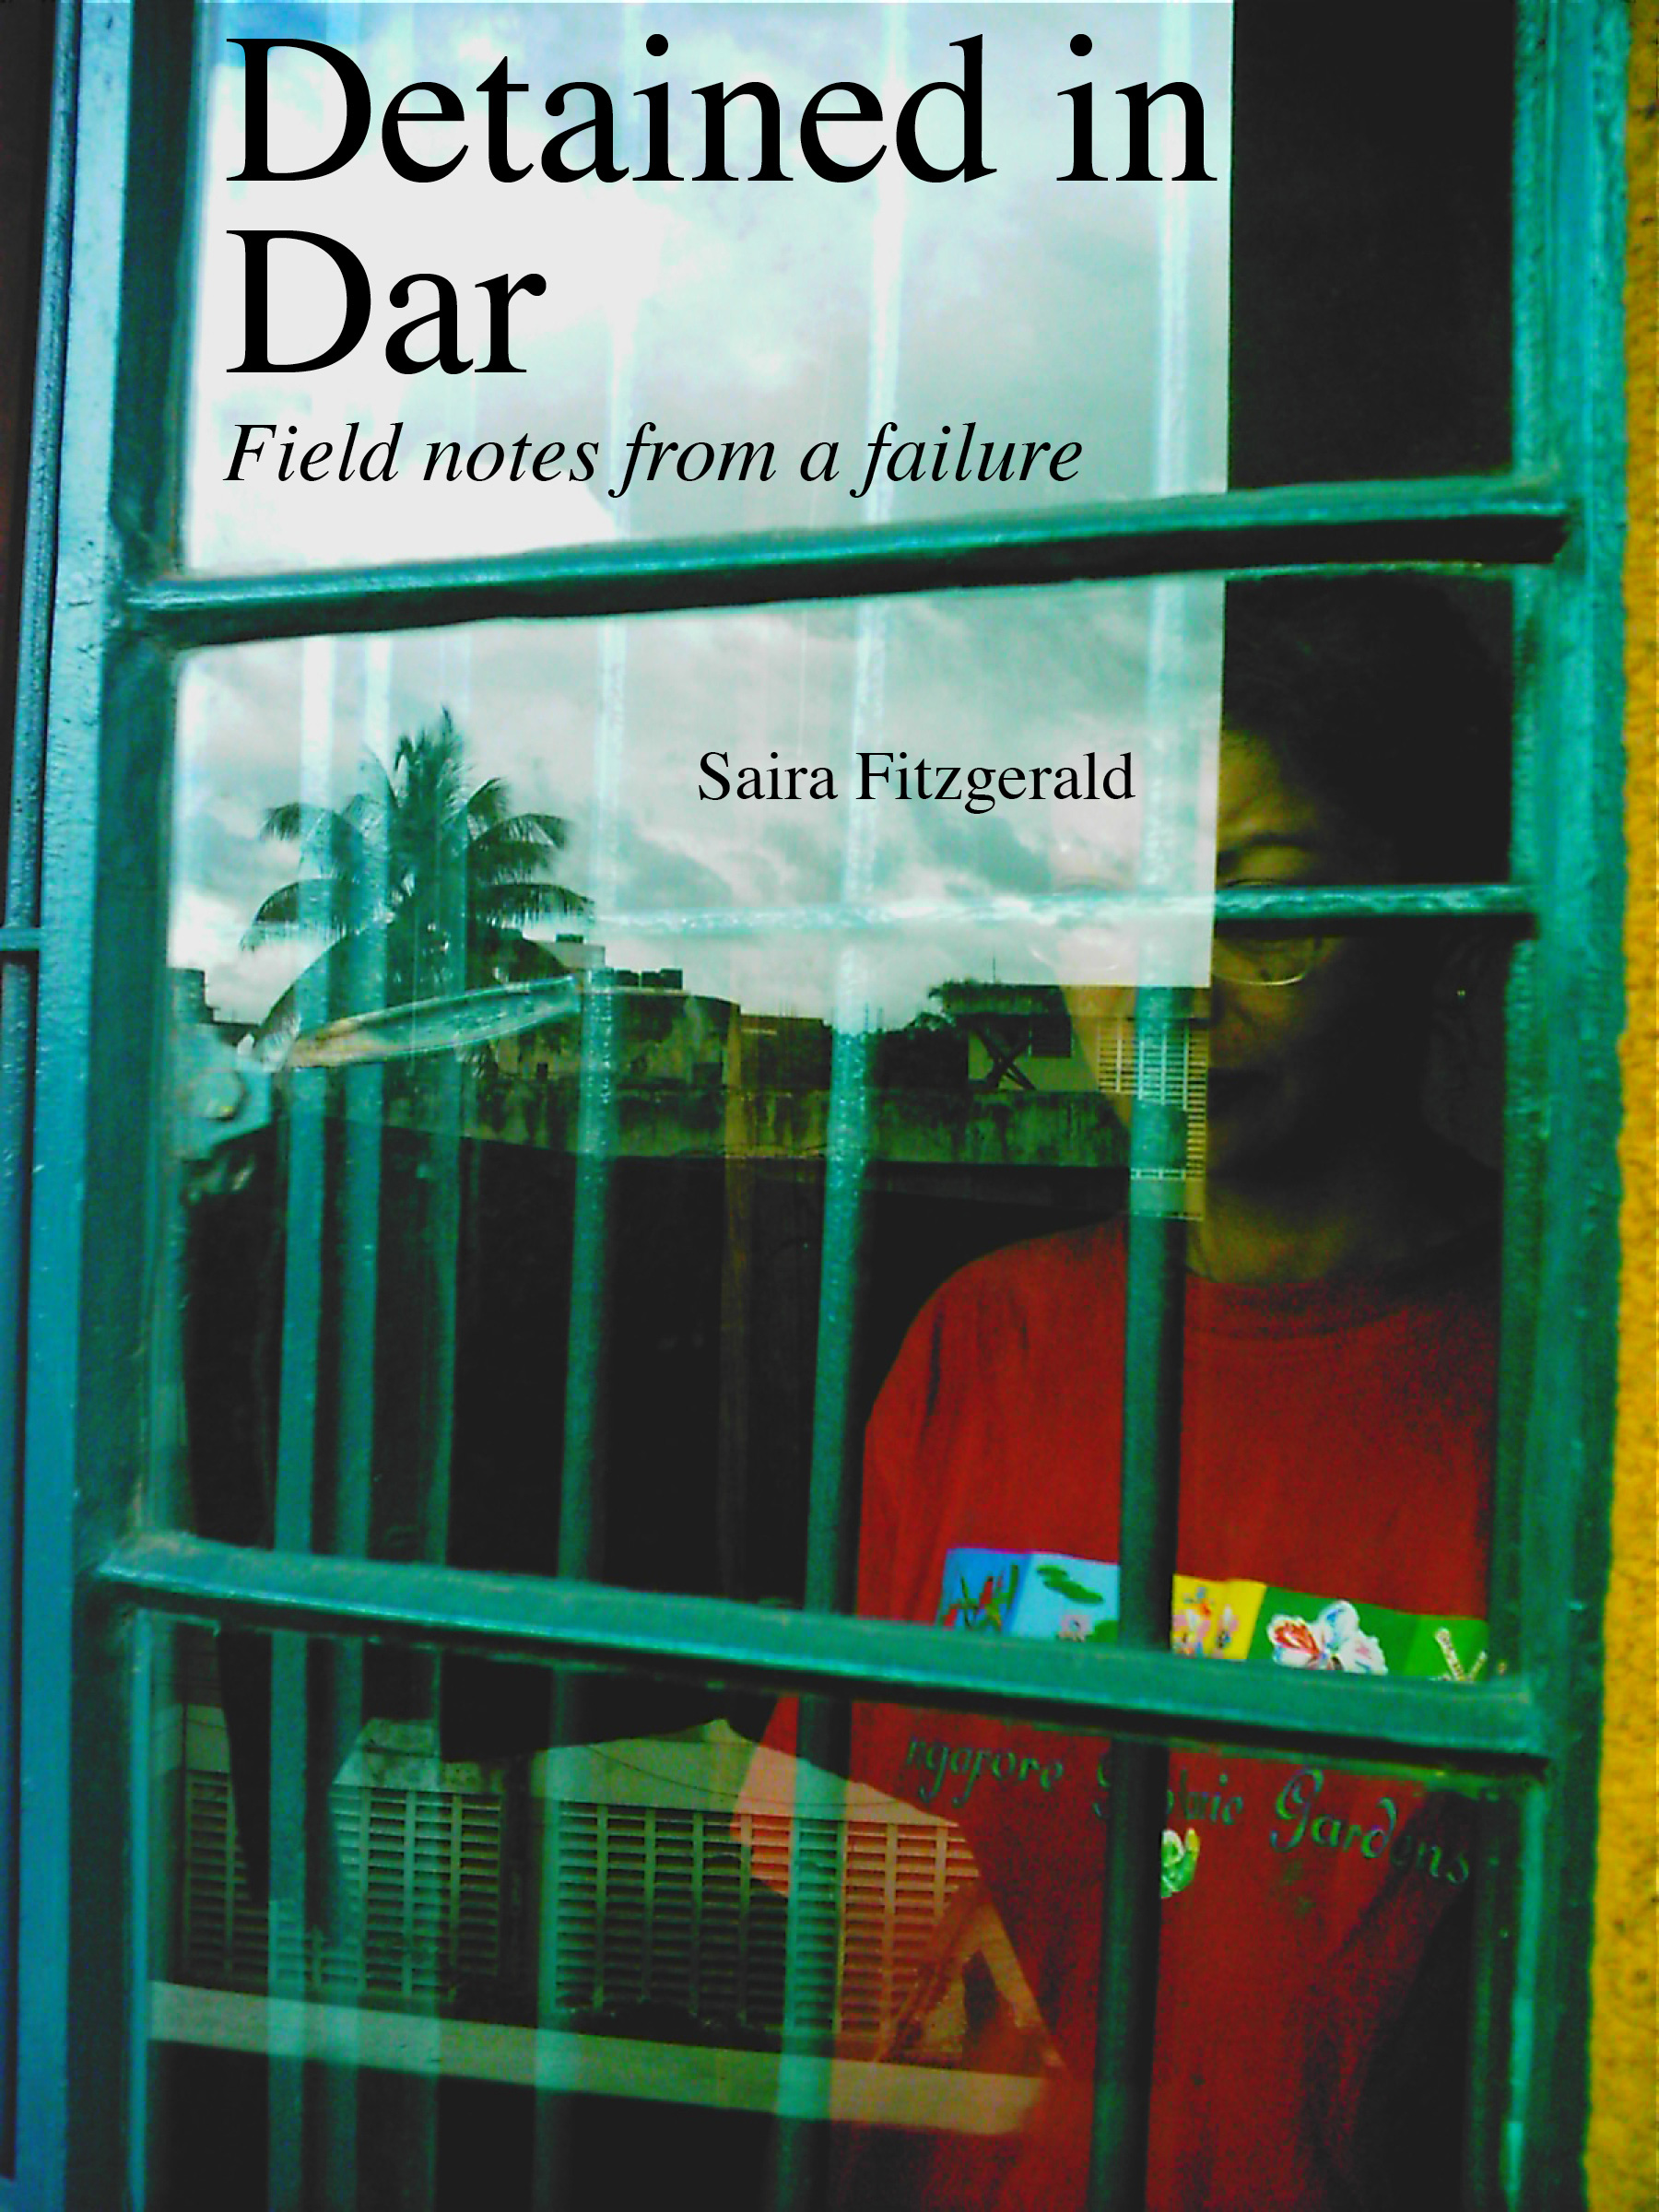 Cover of Saira's book, Detained in Dar